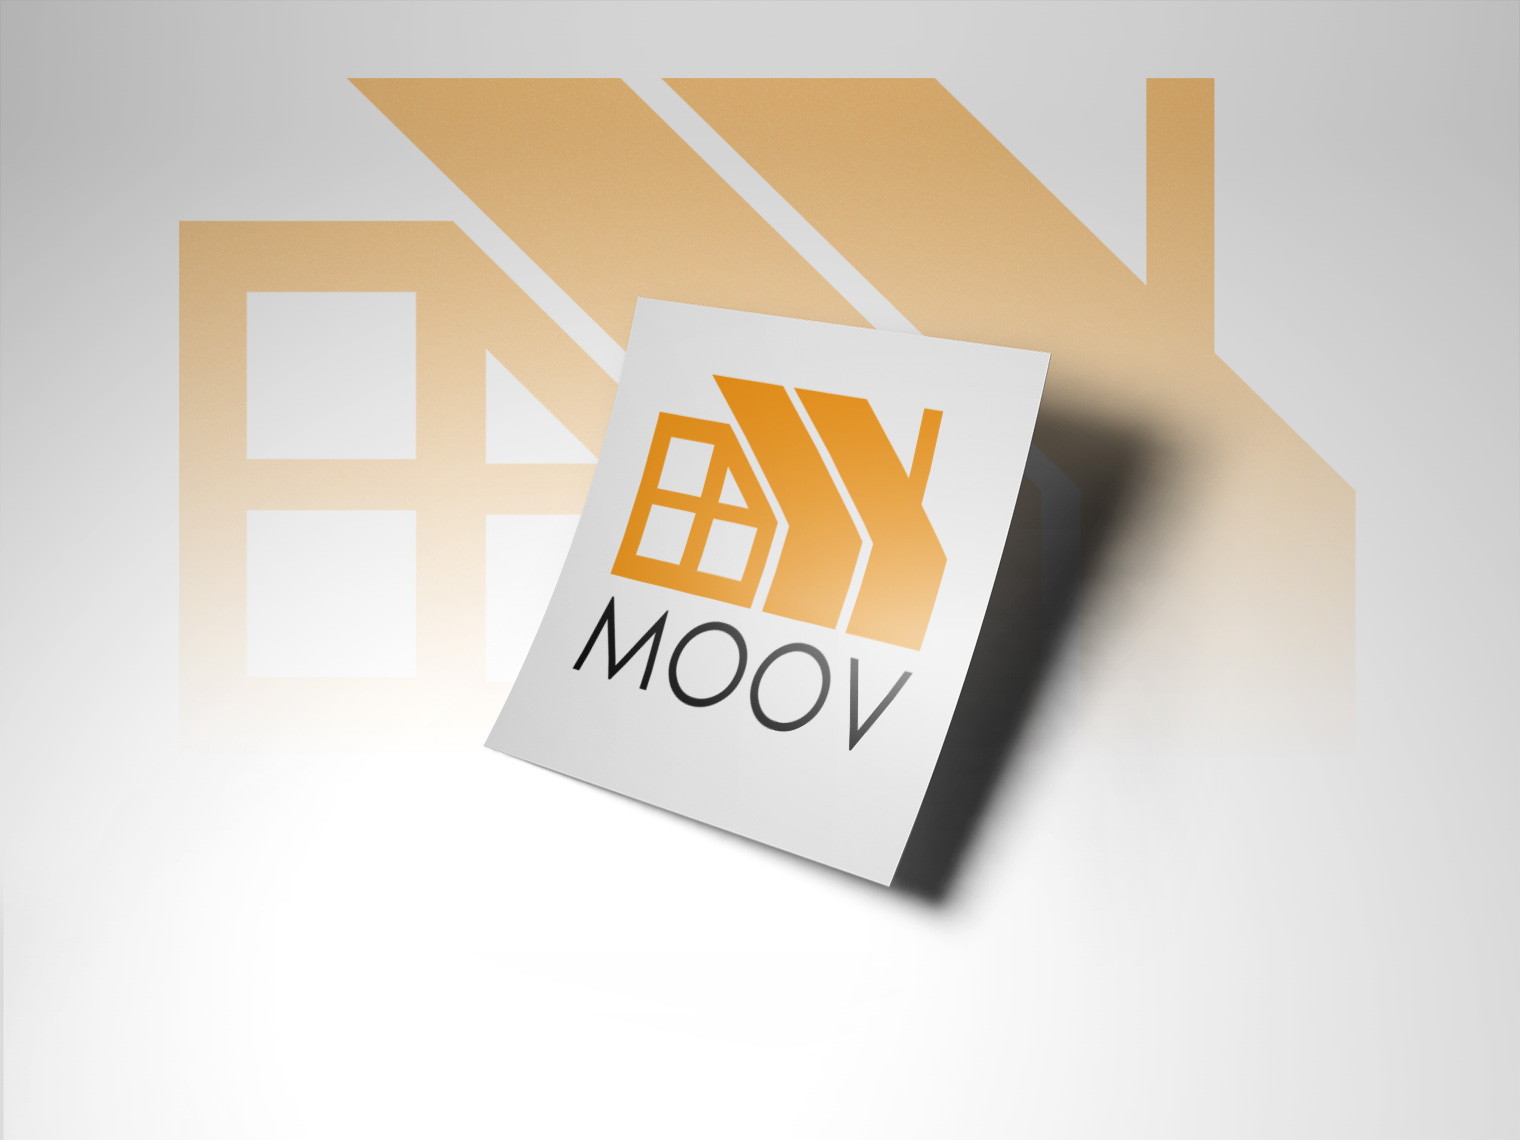 An image of a white piece of paper with the moovhomes logo